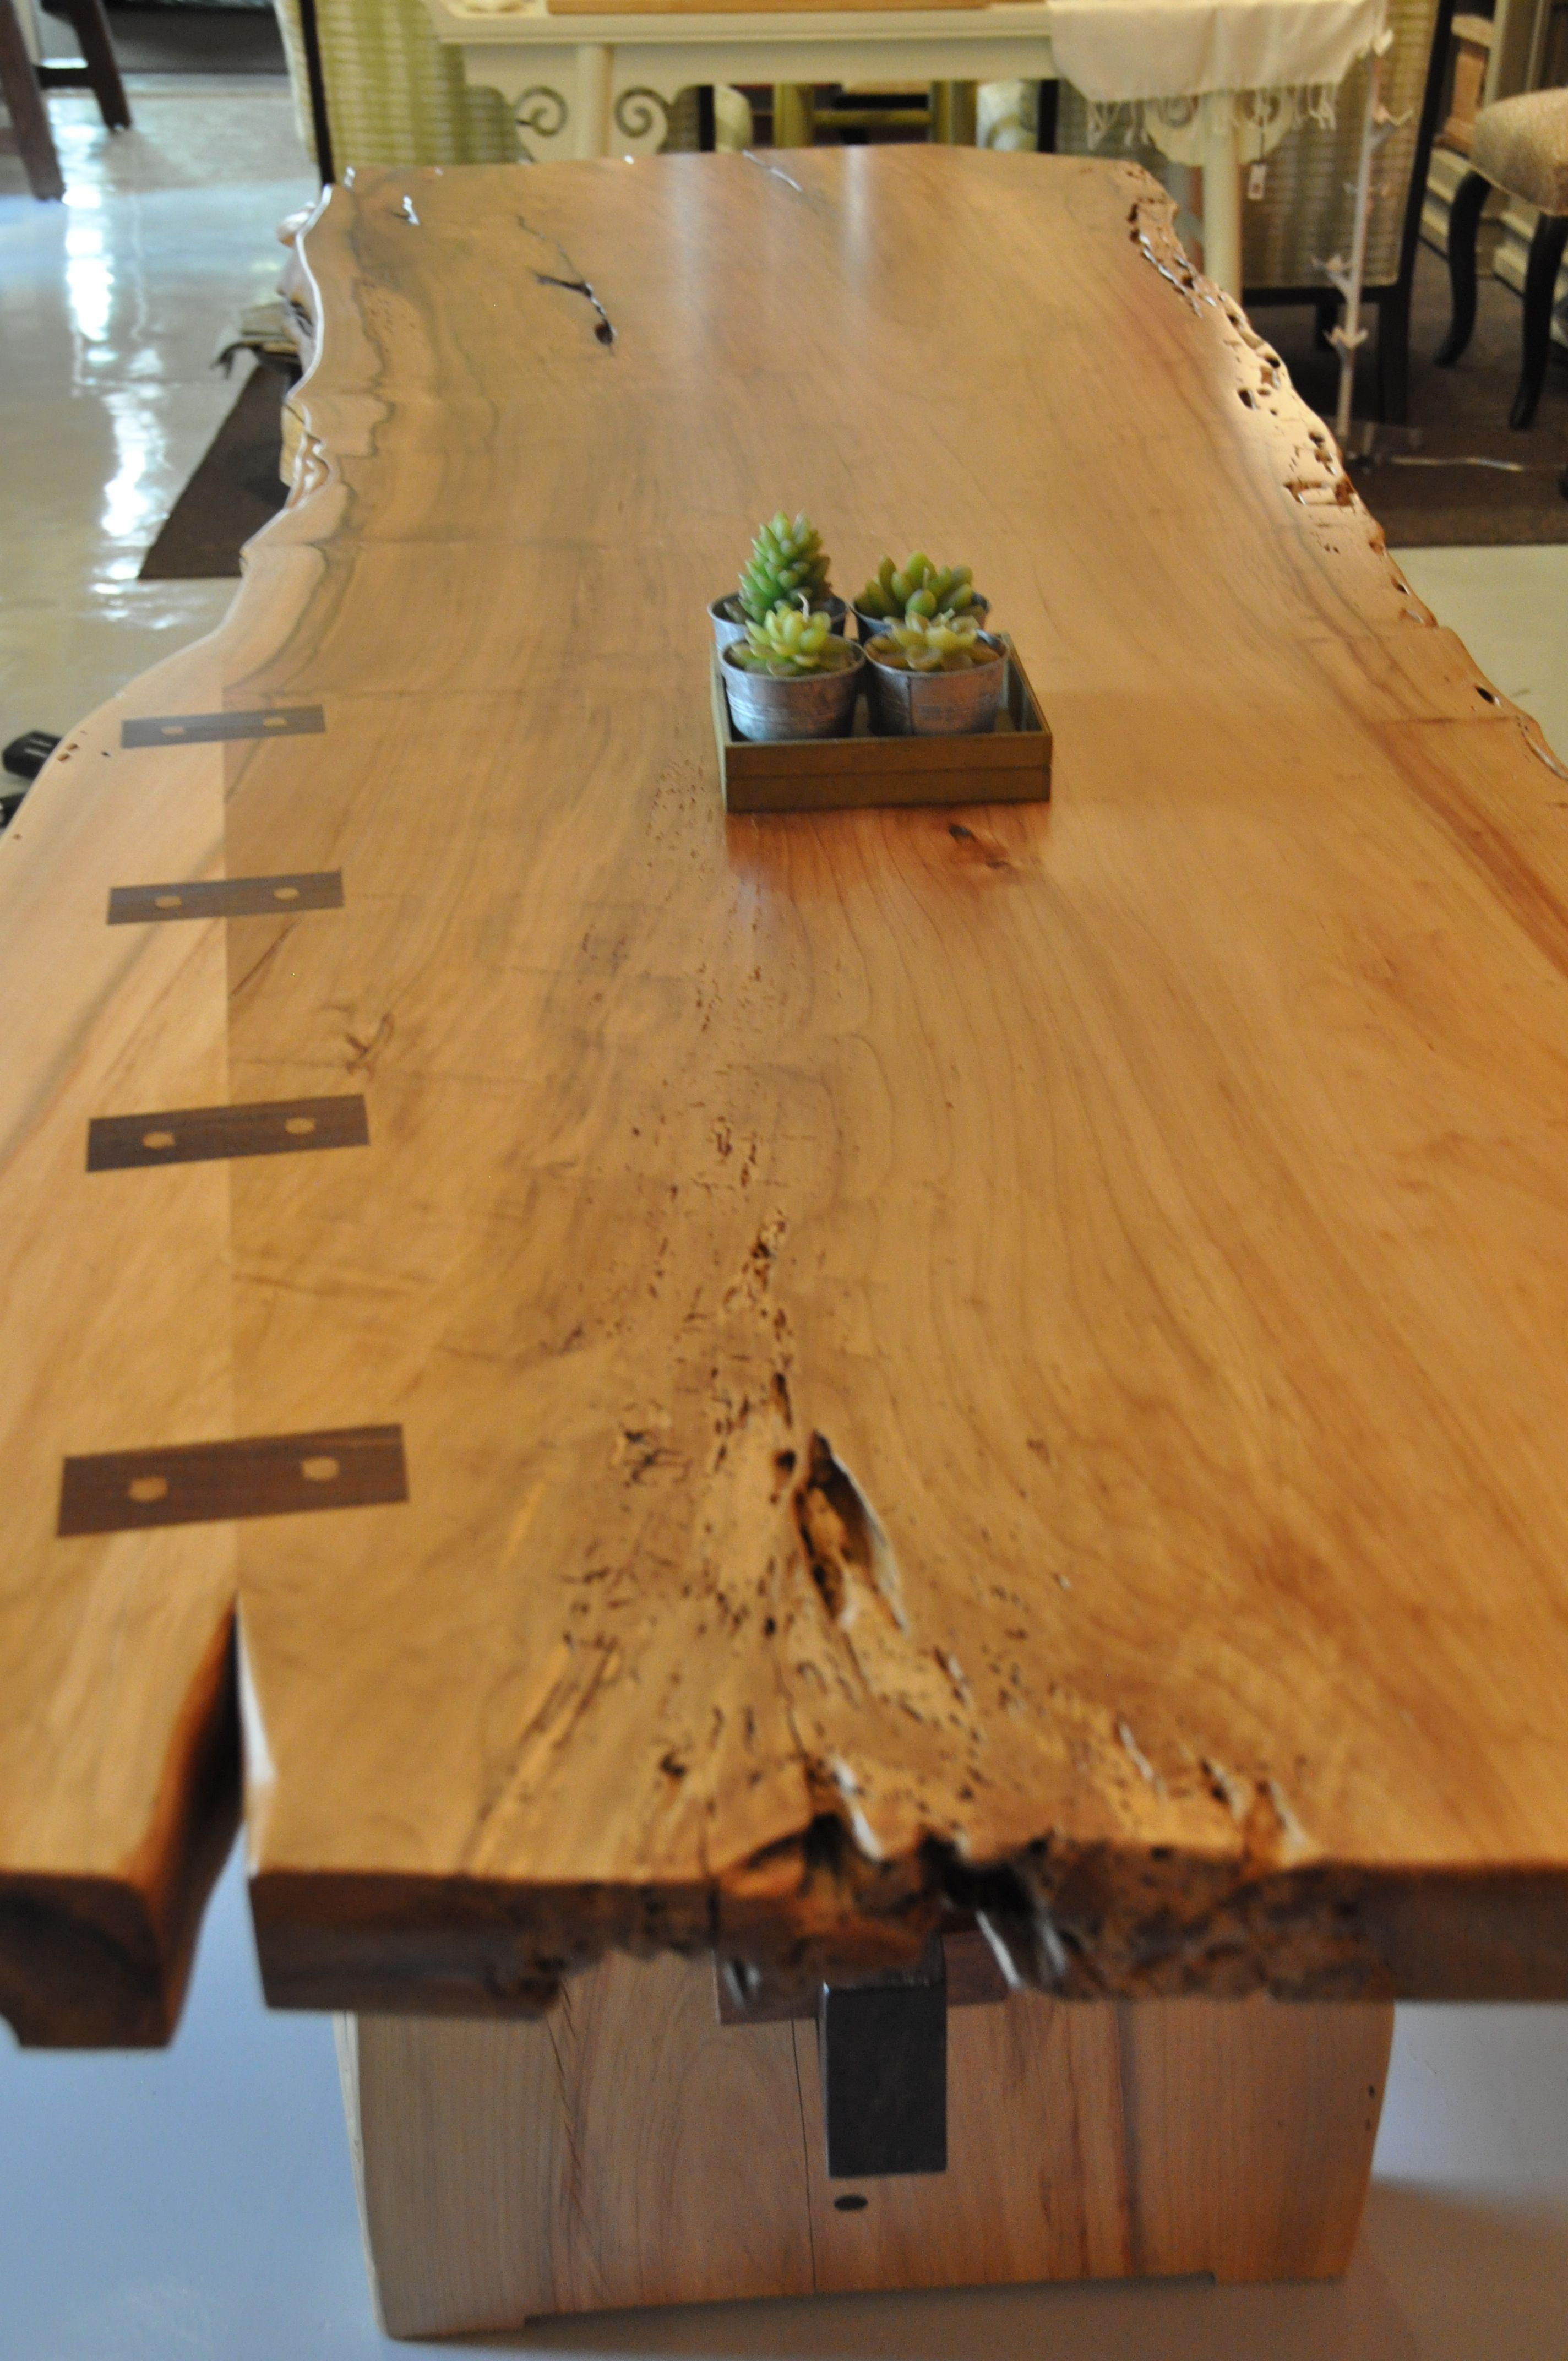 Carey Berkus Designs San Miguel De Allende Mexico Custom Dining Room Table Out Of Alimo Wood With Contrasting Erfly Joinery Made In By